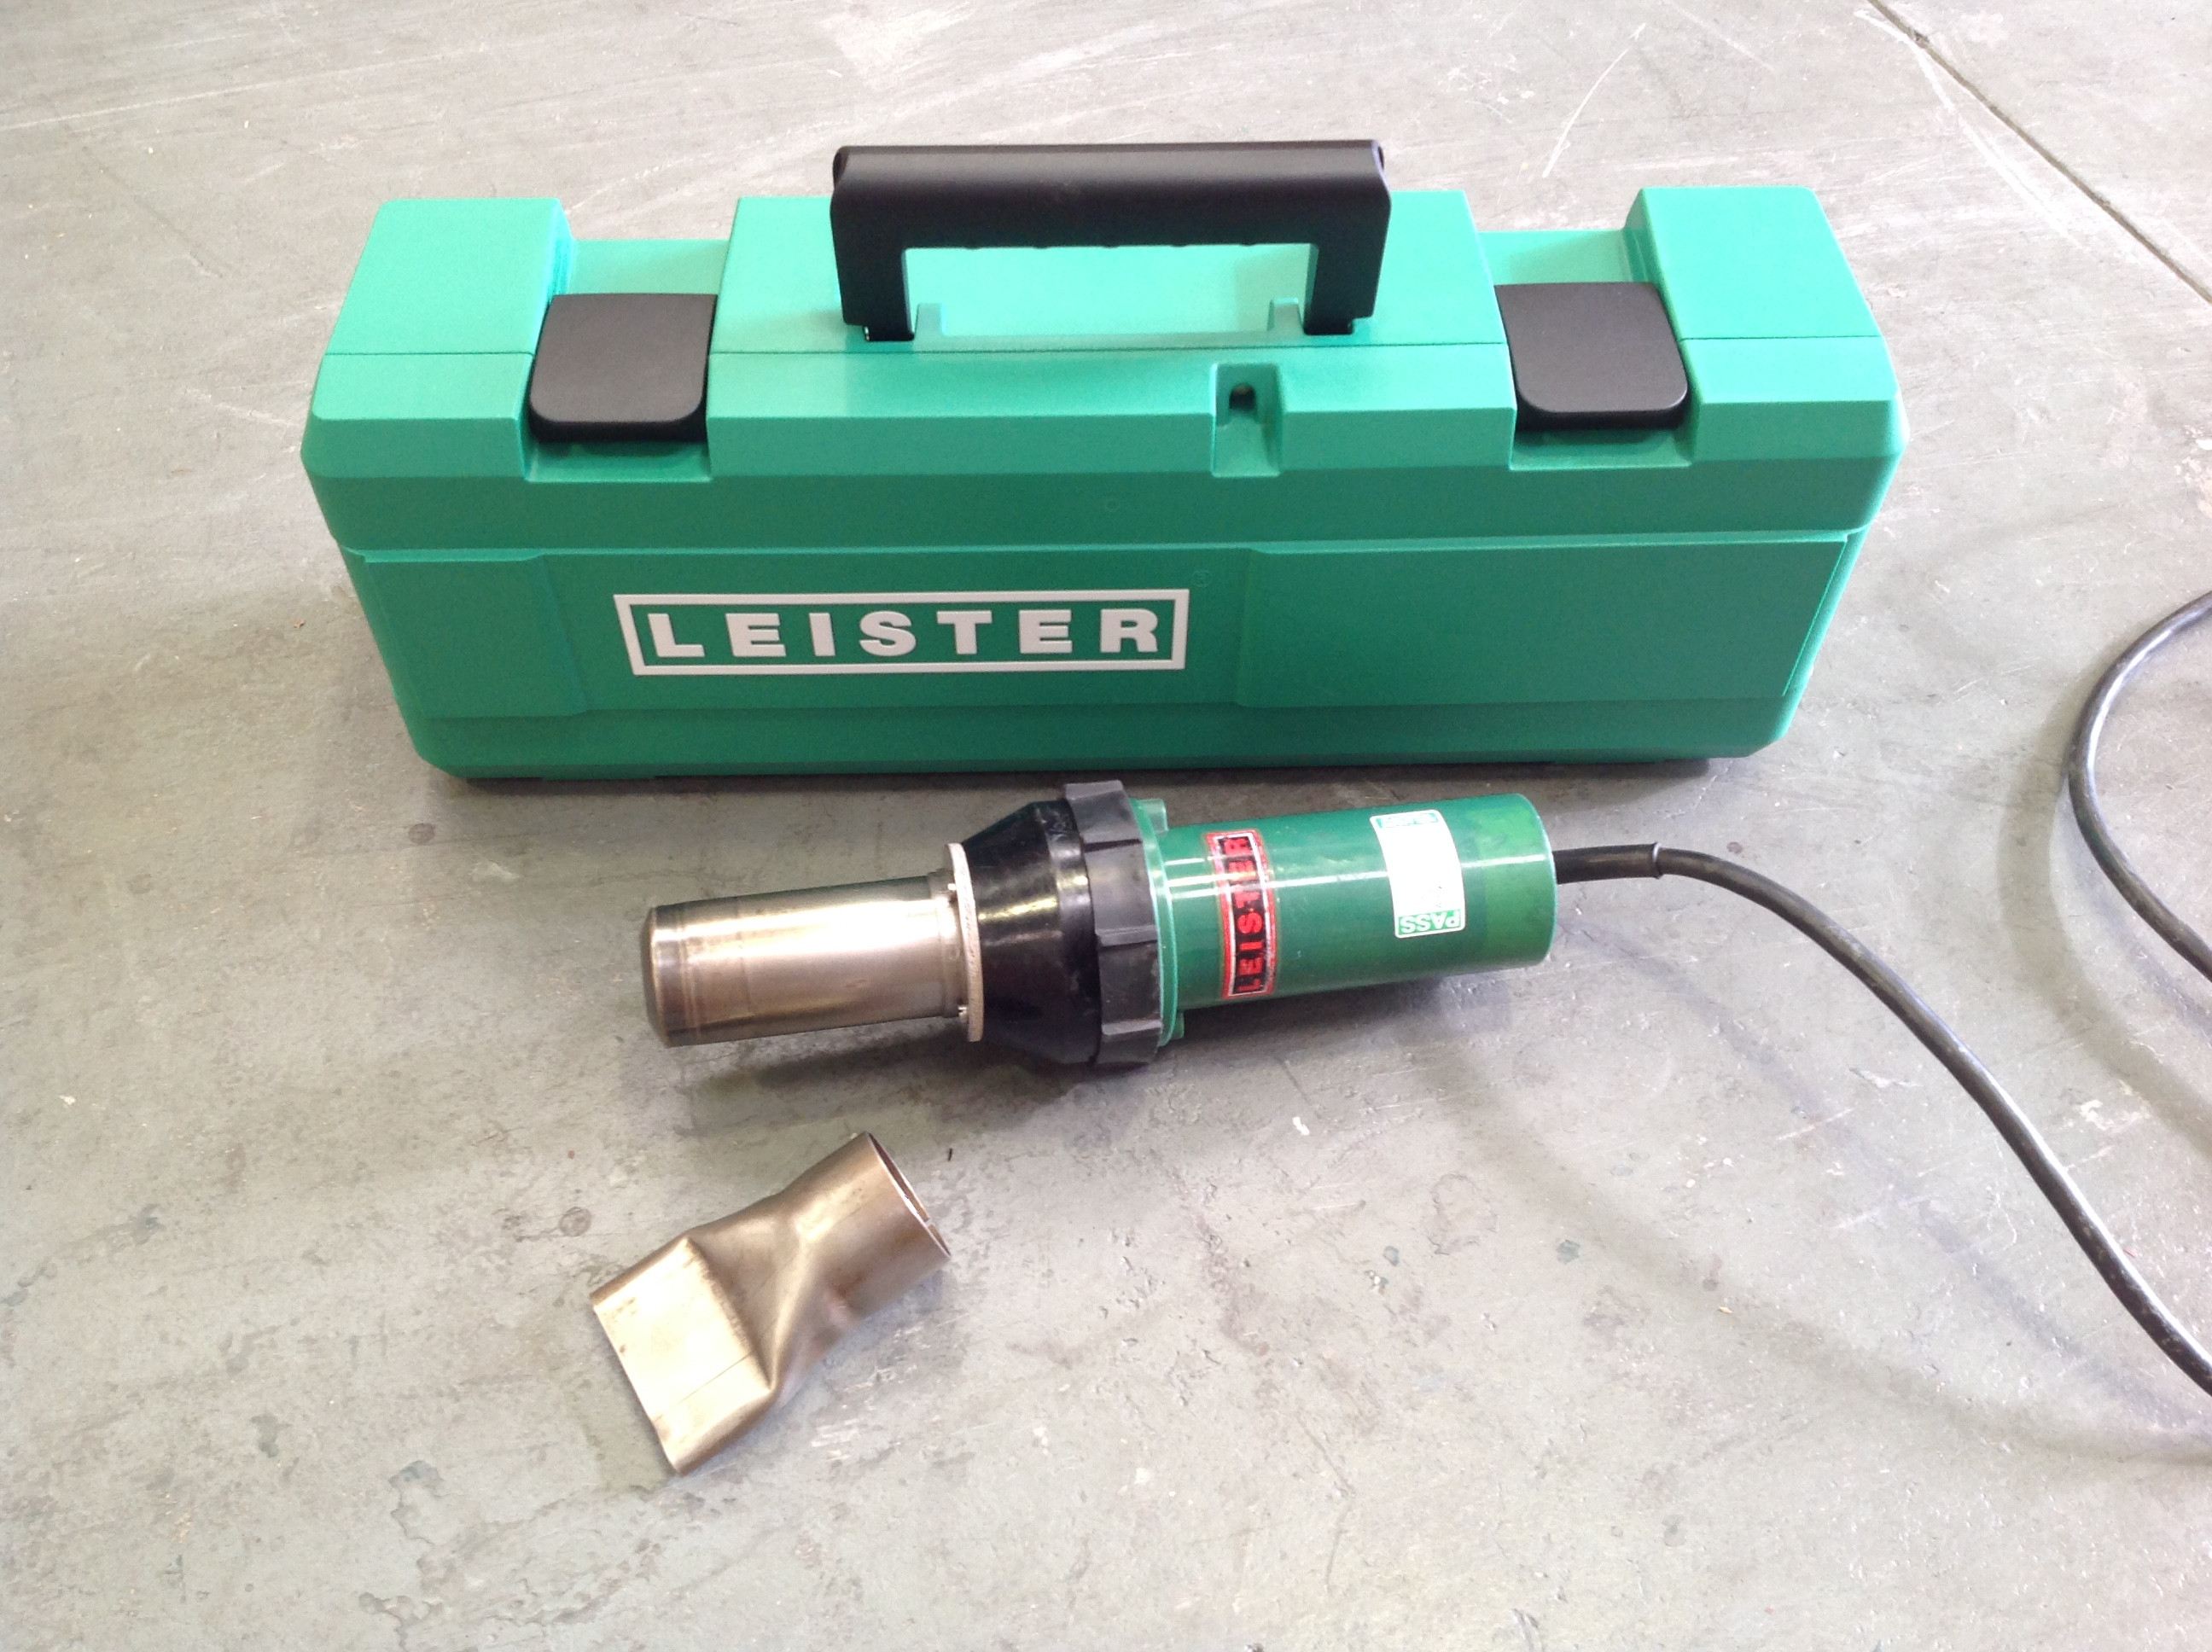 Leister Electron Hot Air Roofing Heat Gun Welder with Nozzle and New Case - 240V - 240V (USED151)